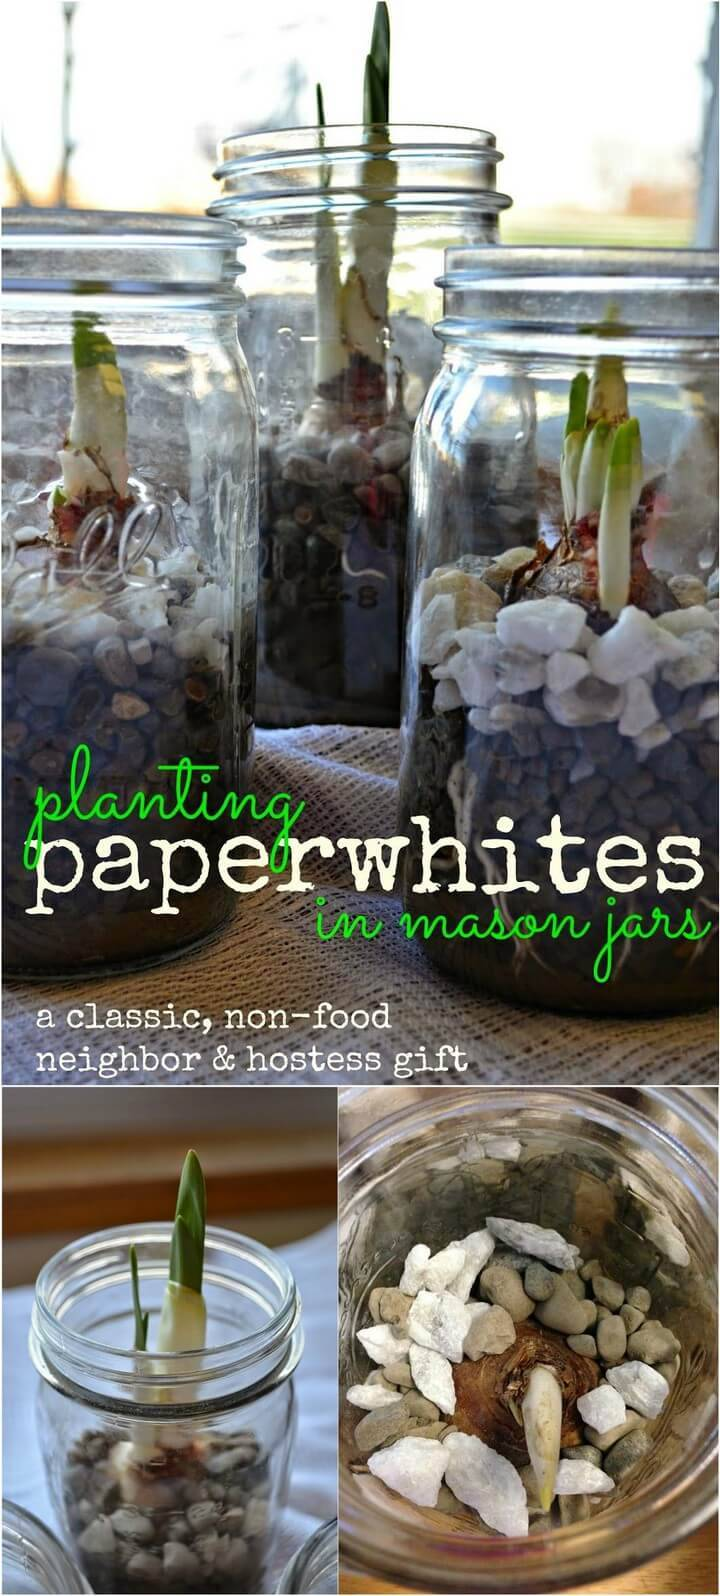 DIY Paperwhites Mason Jar Planter Gifts